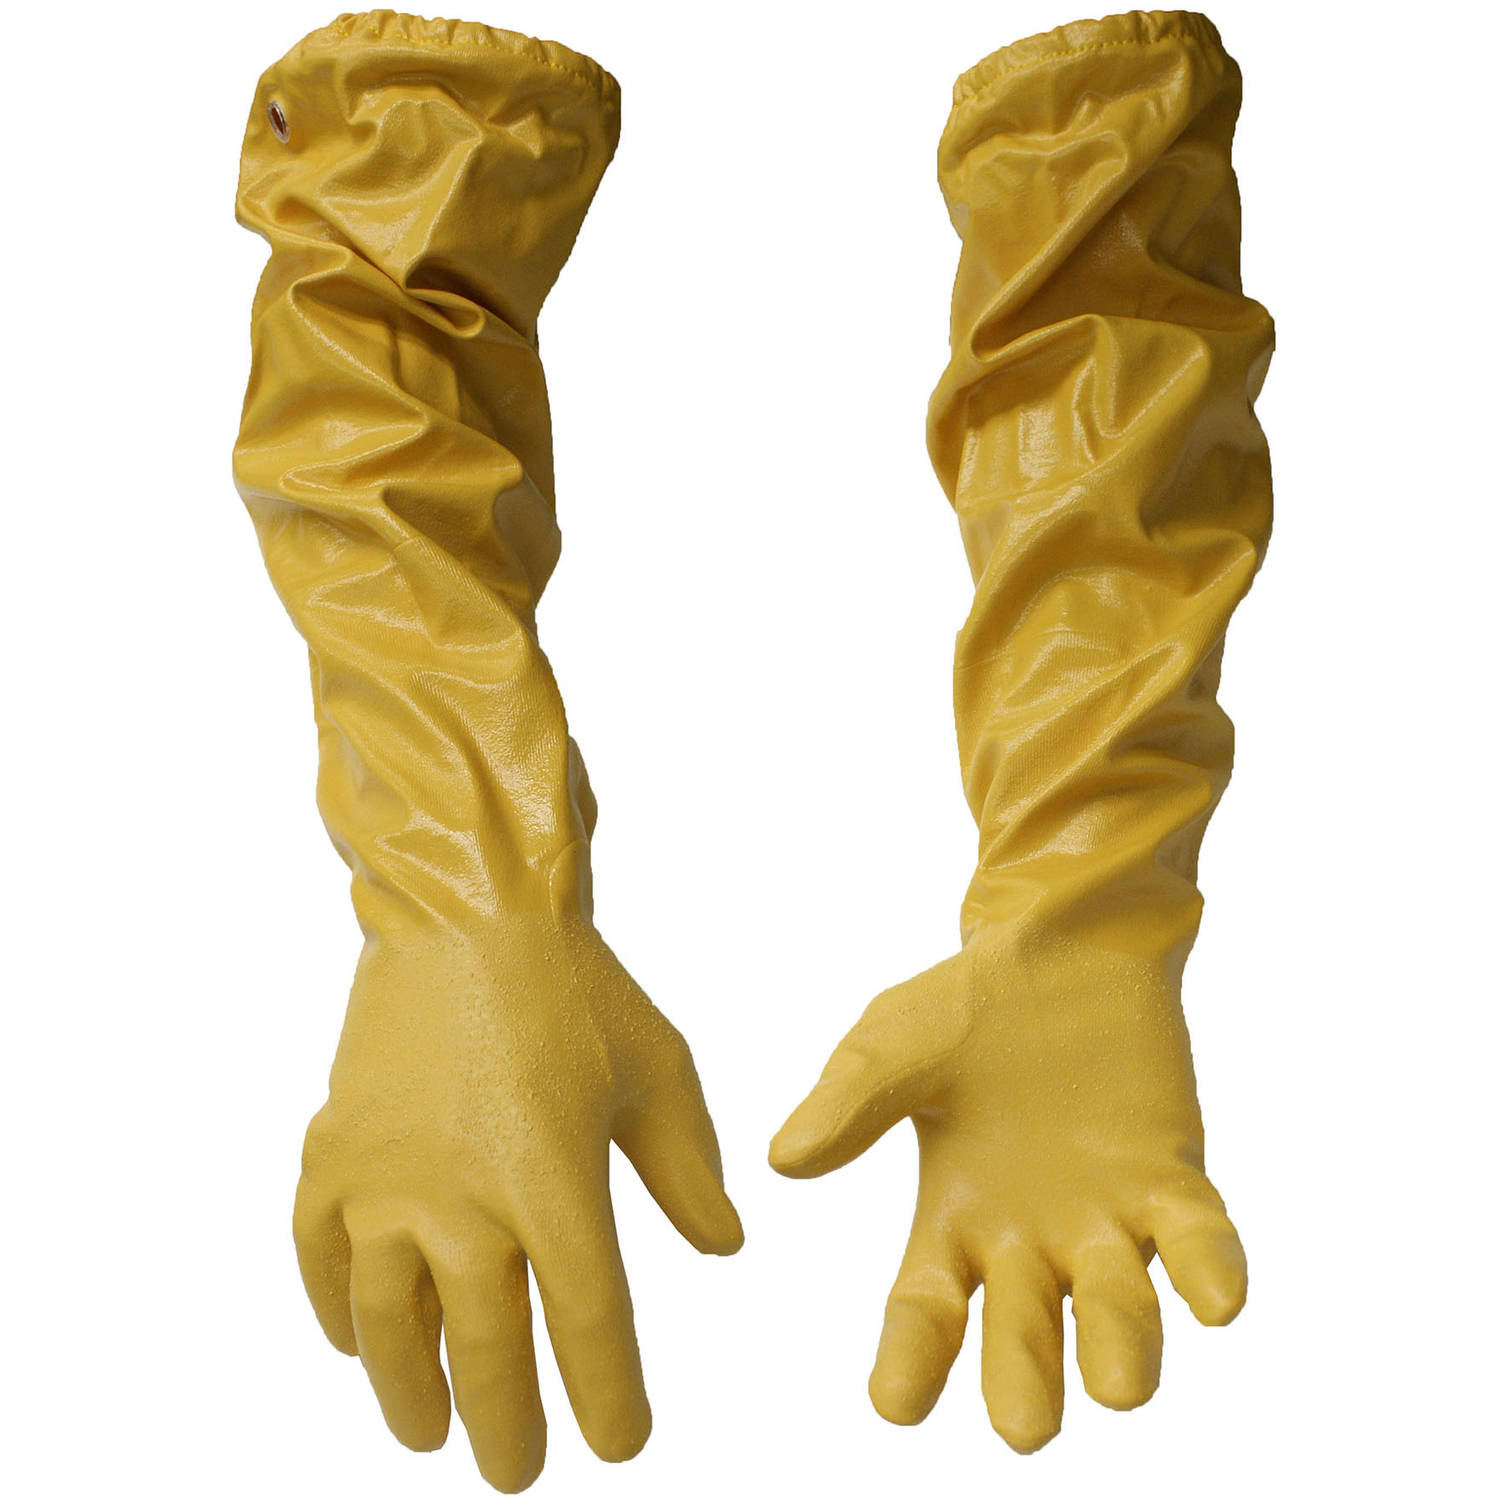 Atlas Glove 8772M Medium Cotton Lined Atlas Nitrile-Coated Work Gloves